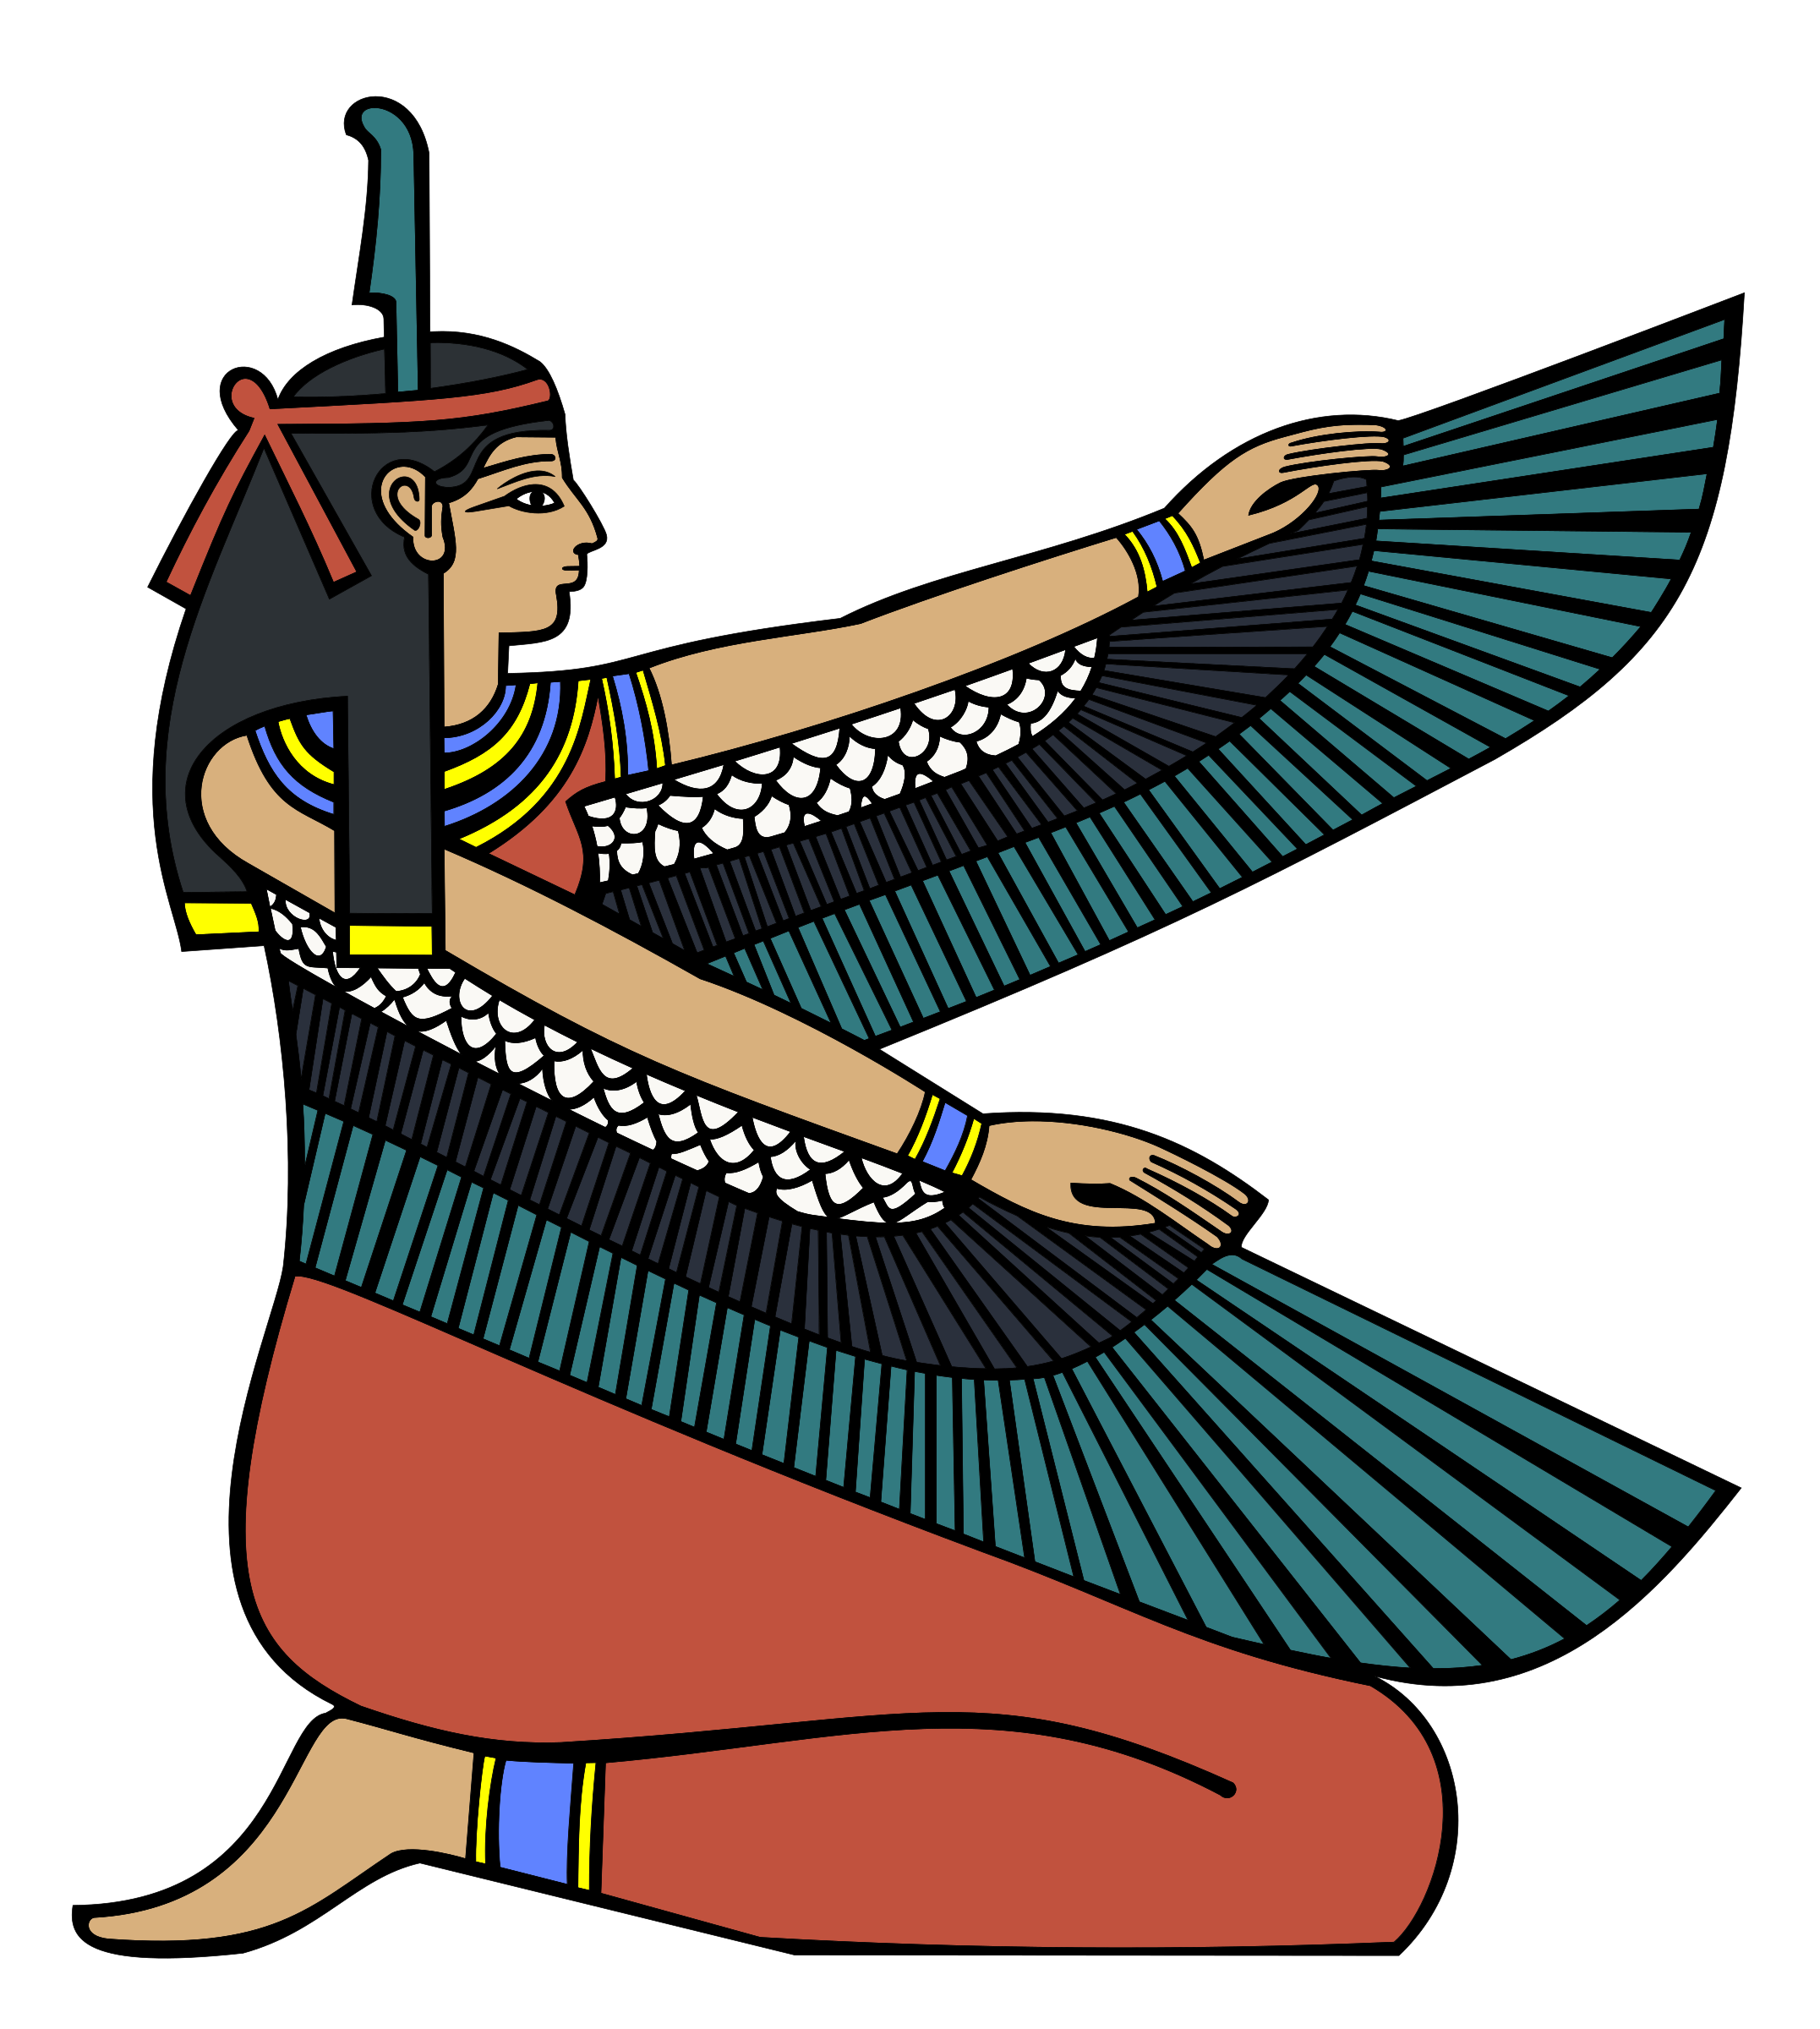 Maat big image png. History clipart general information